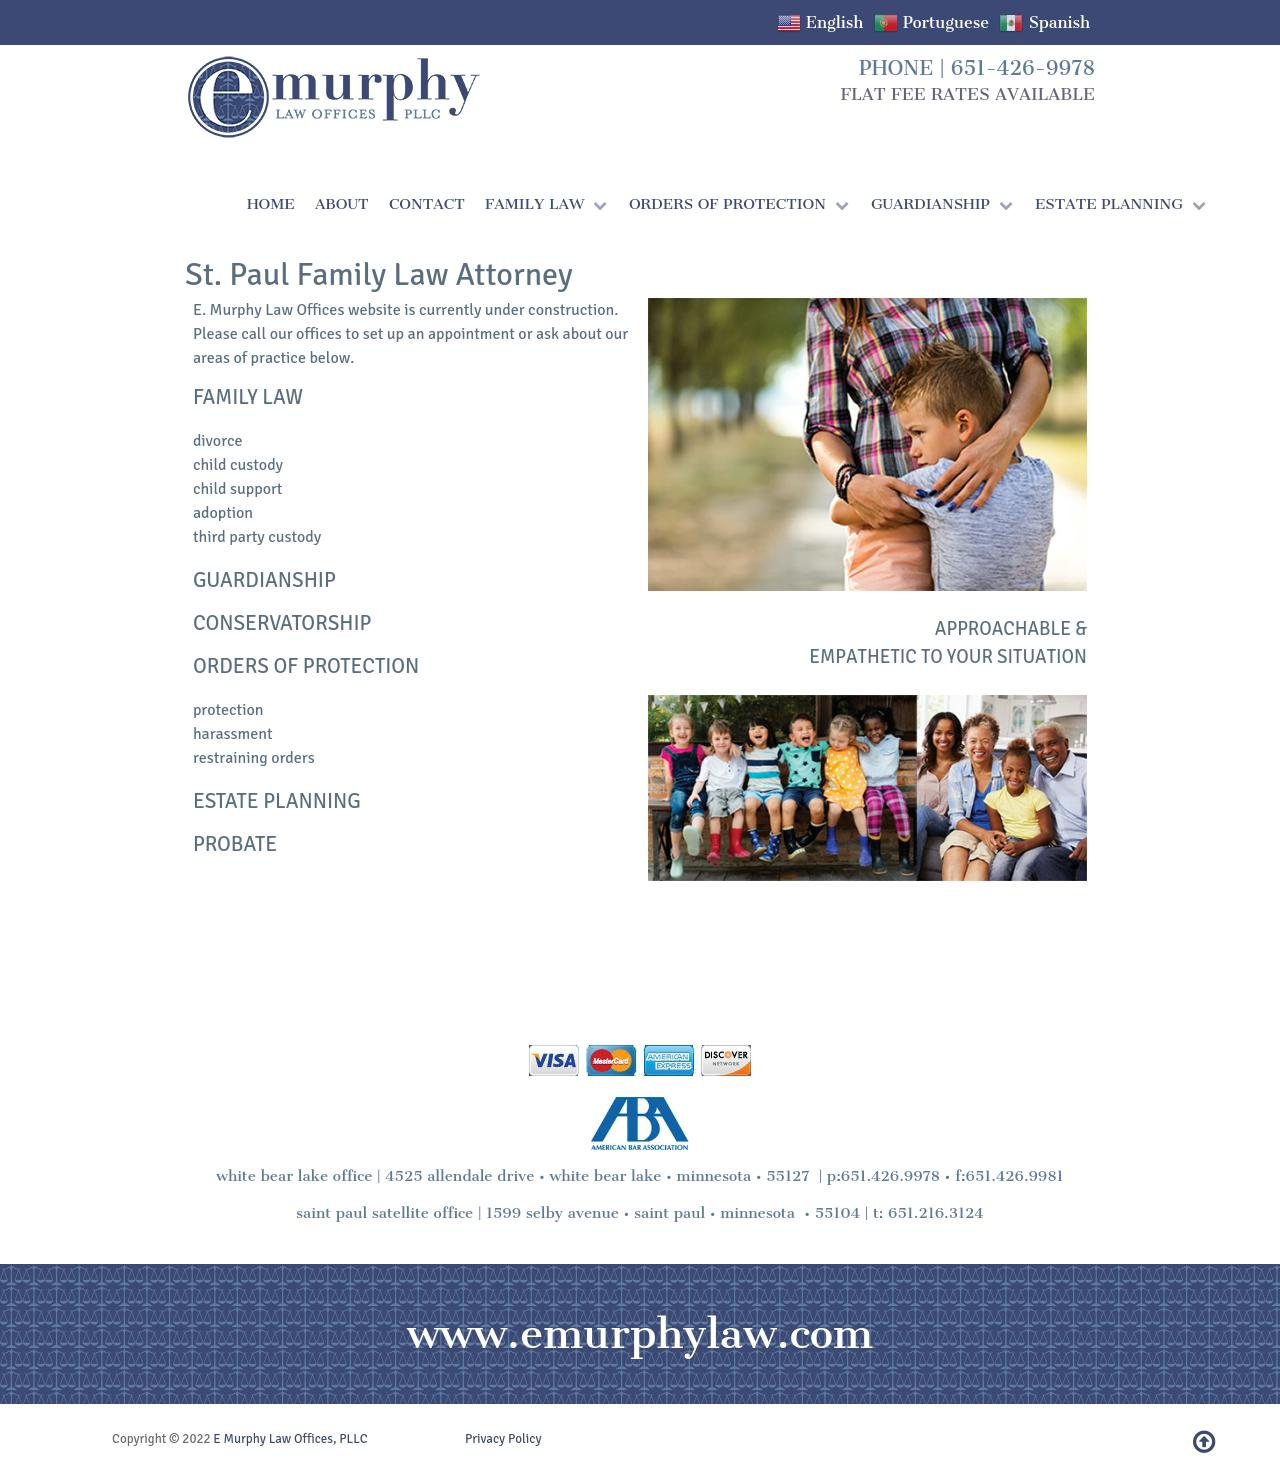 E Murphy Law Offices, PLLC - Saint Paul MN Lawyers